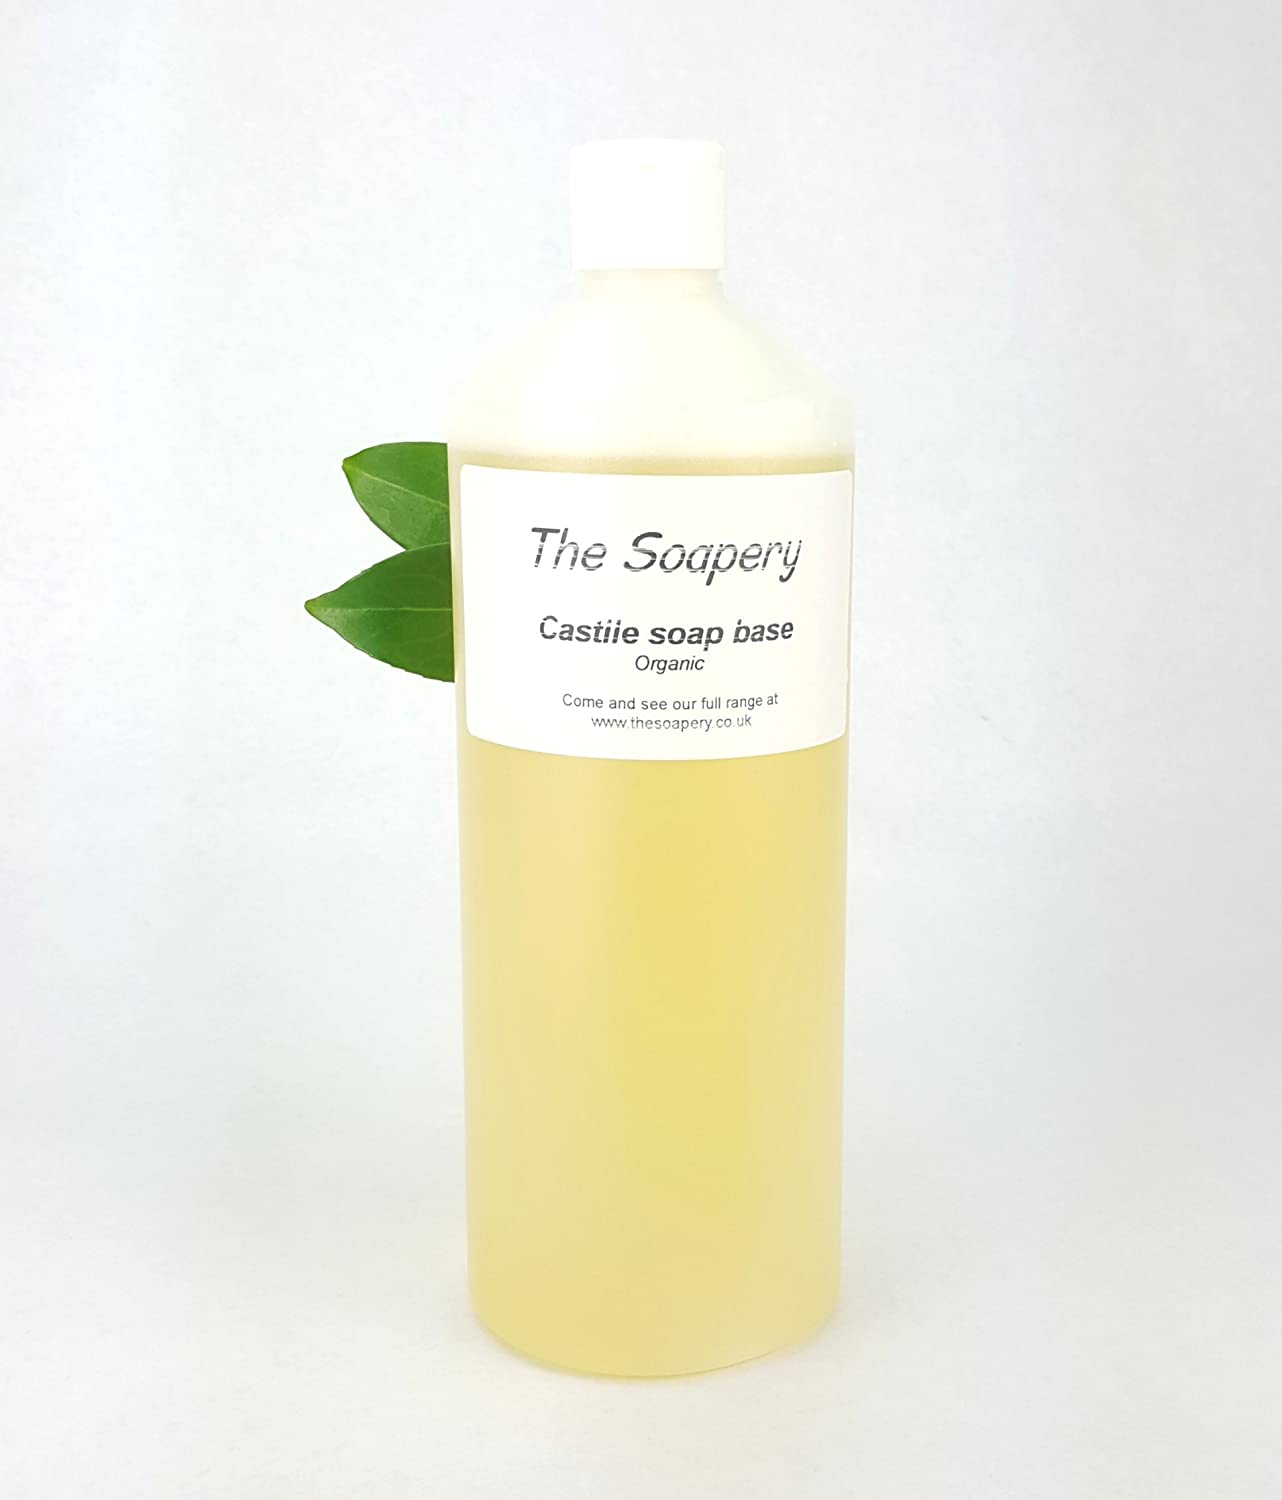 Castile Liquid Soap Base 1 Litre - Organic SLS SLES Sulphate and Paraben Free The Soapery